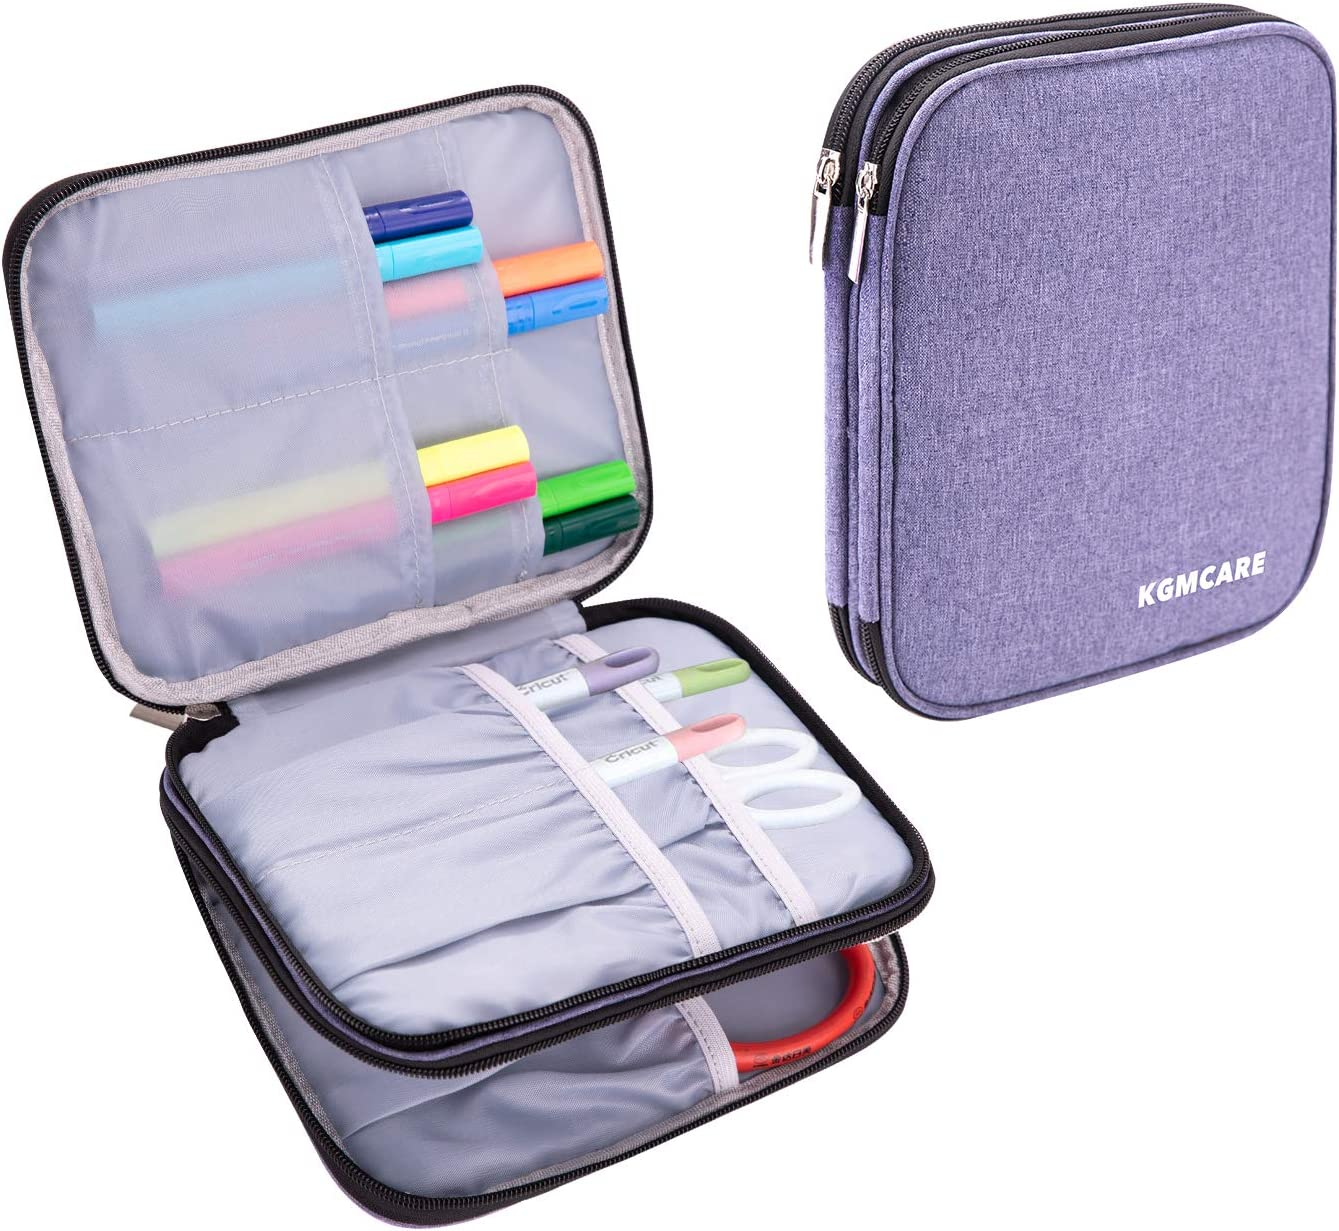 Bag Only Double-Layer Organizer for Cricut Accessories Pink Luxja Carrying Bag for Cricut Pen Set and Basic Tool Set